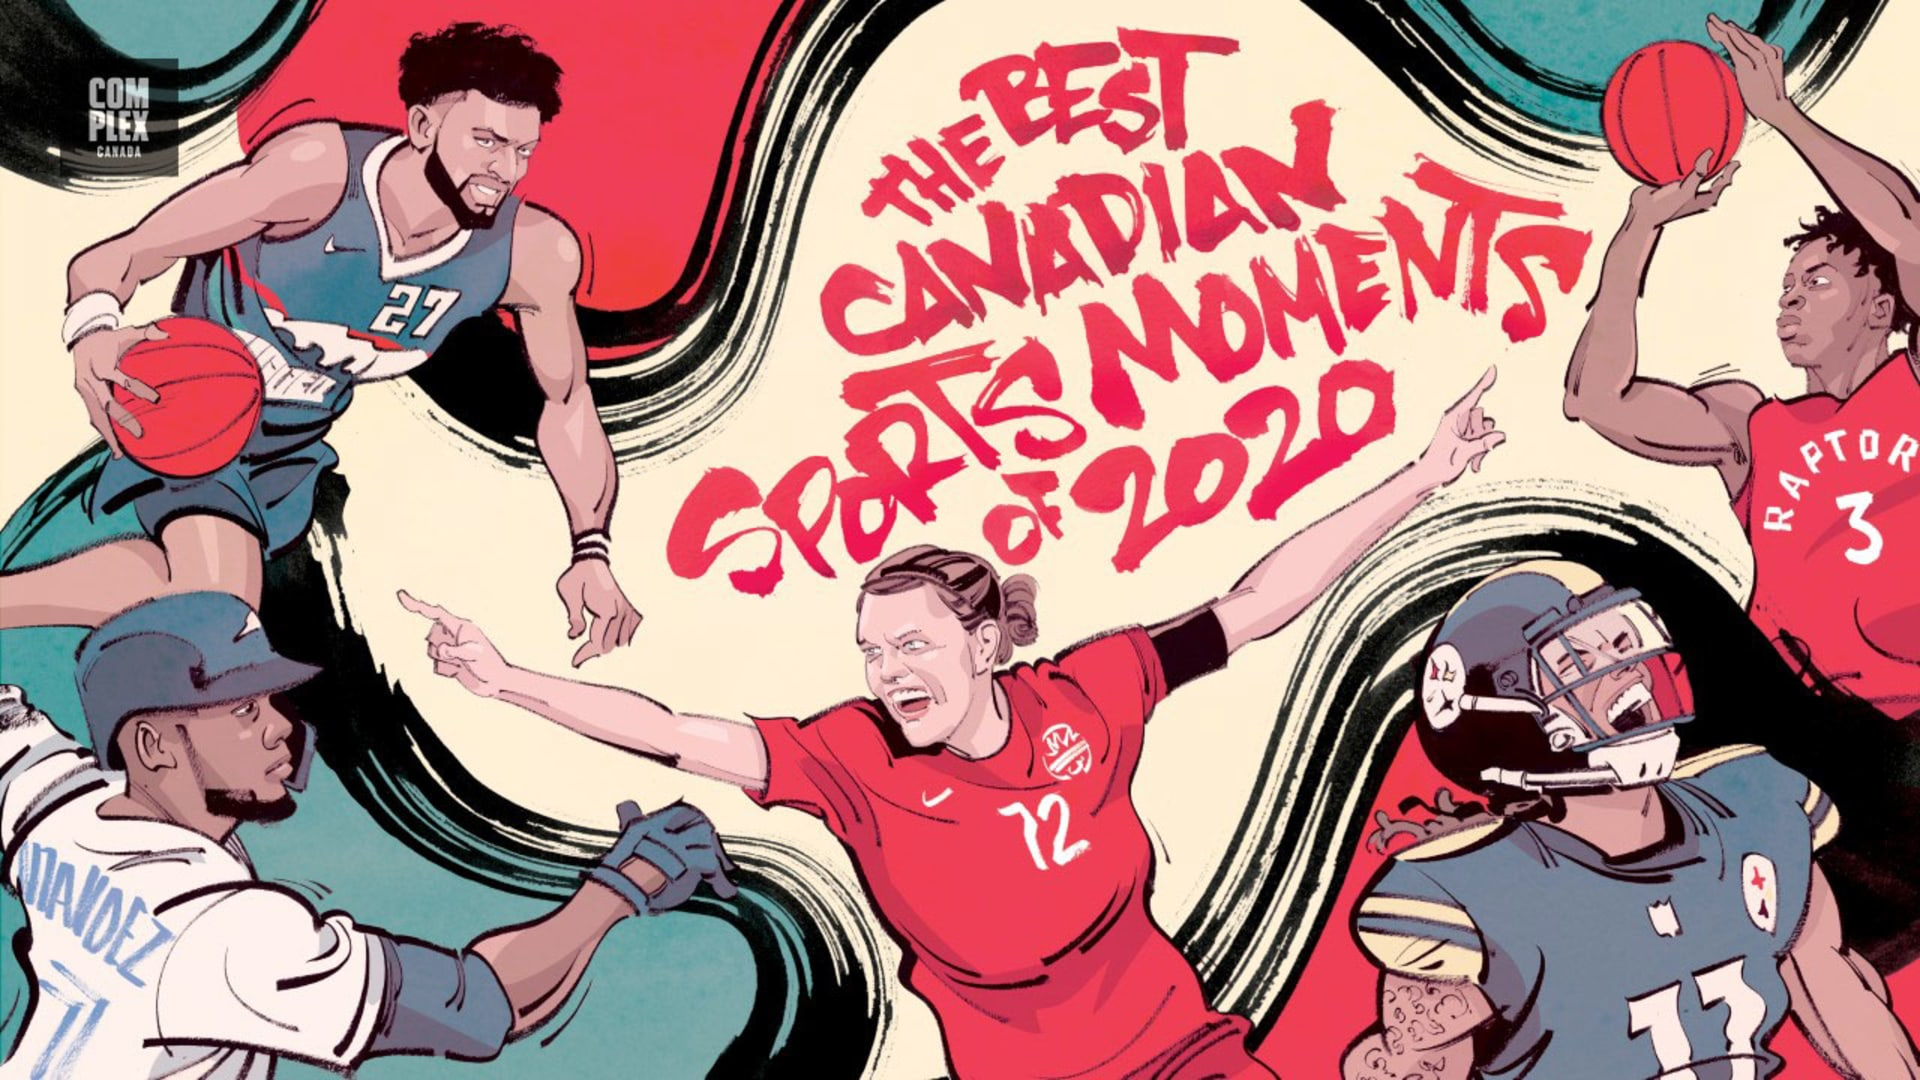 best-canadian-sports-moments-2020-jamal-murray-og-anunoby